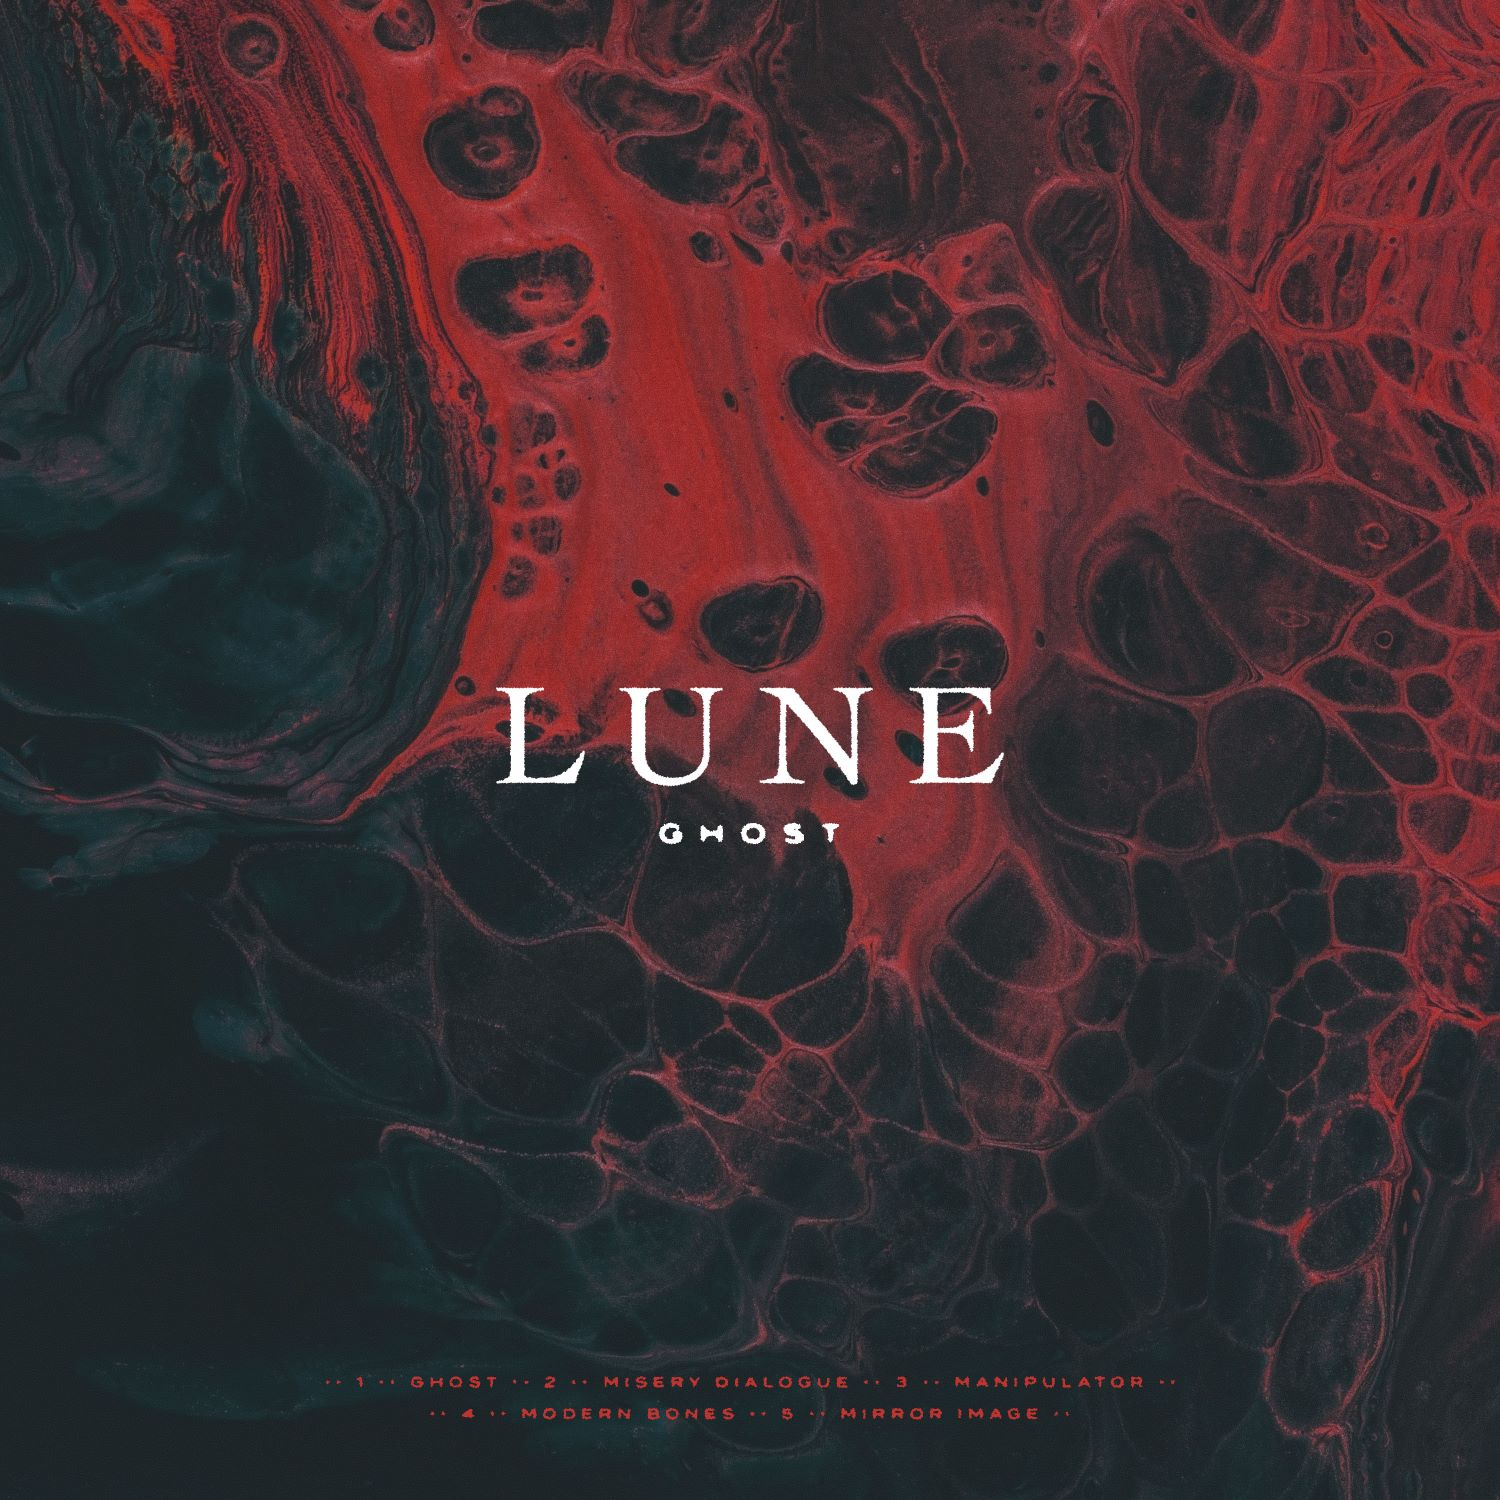 LUNE Ghost cover